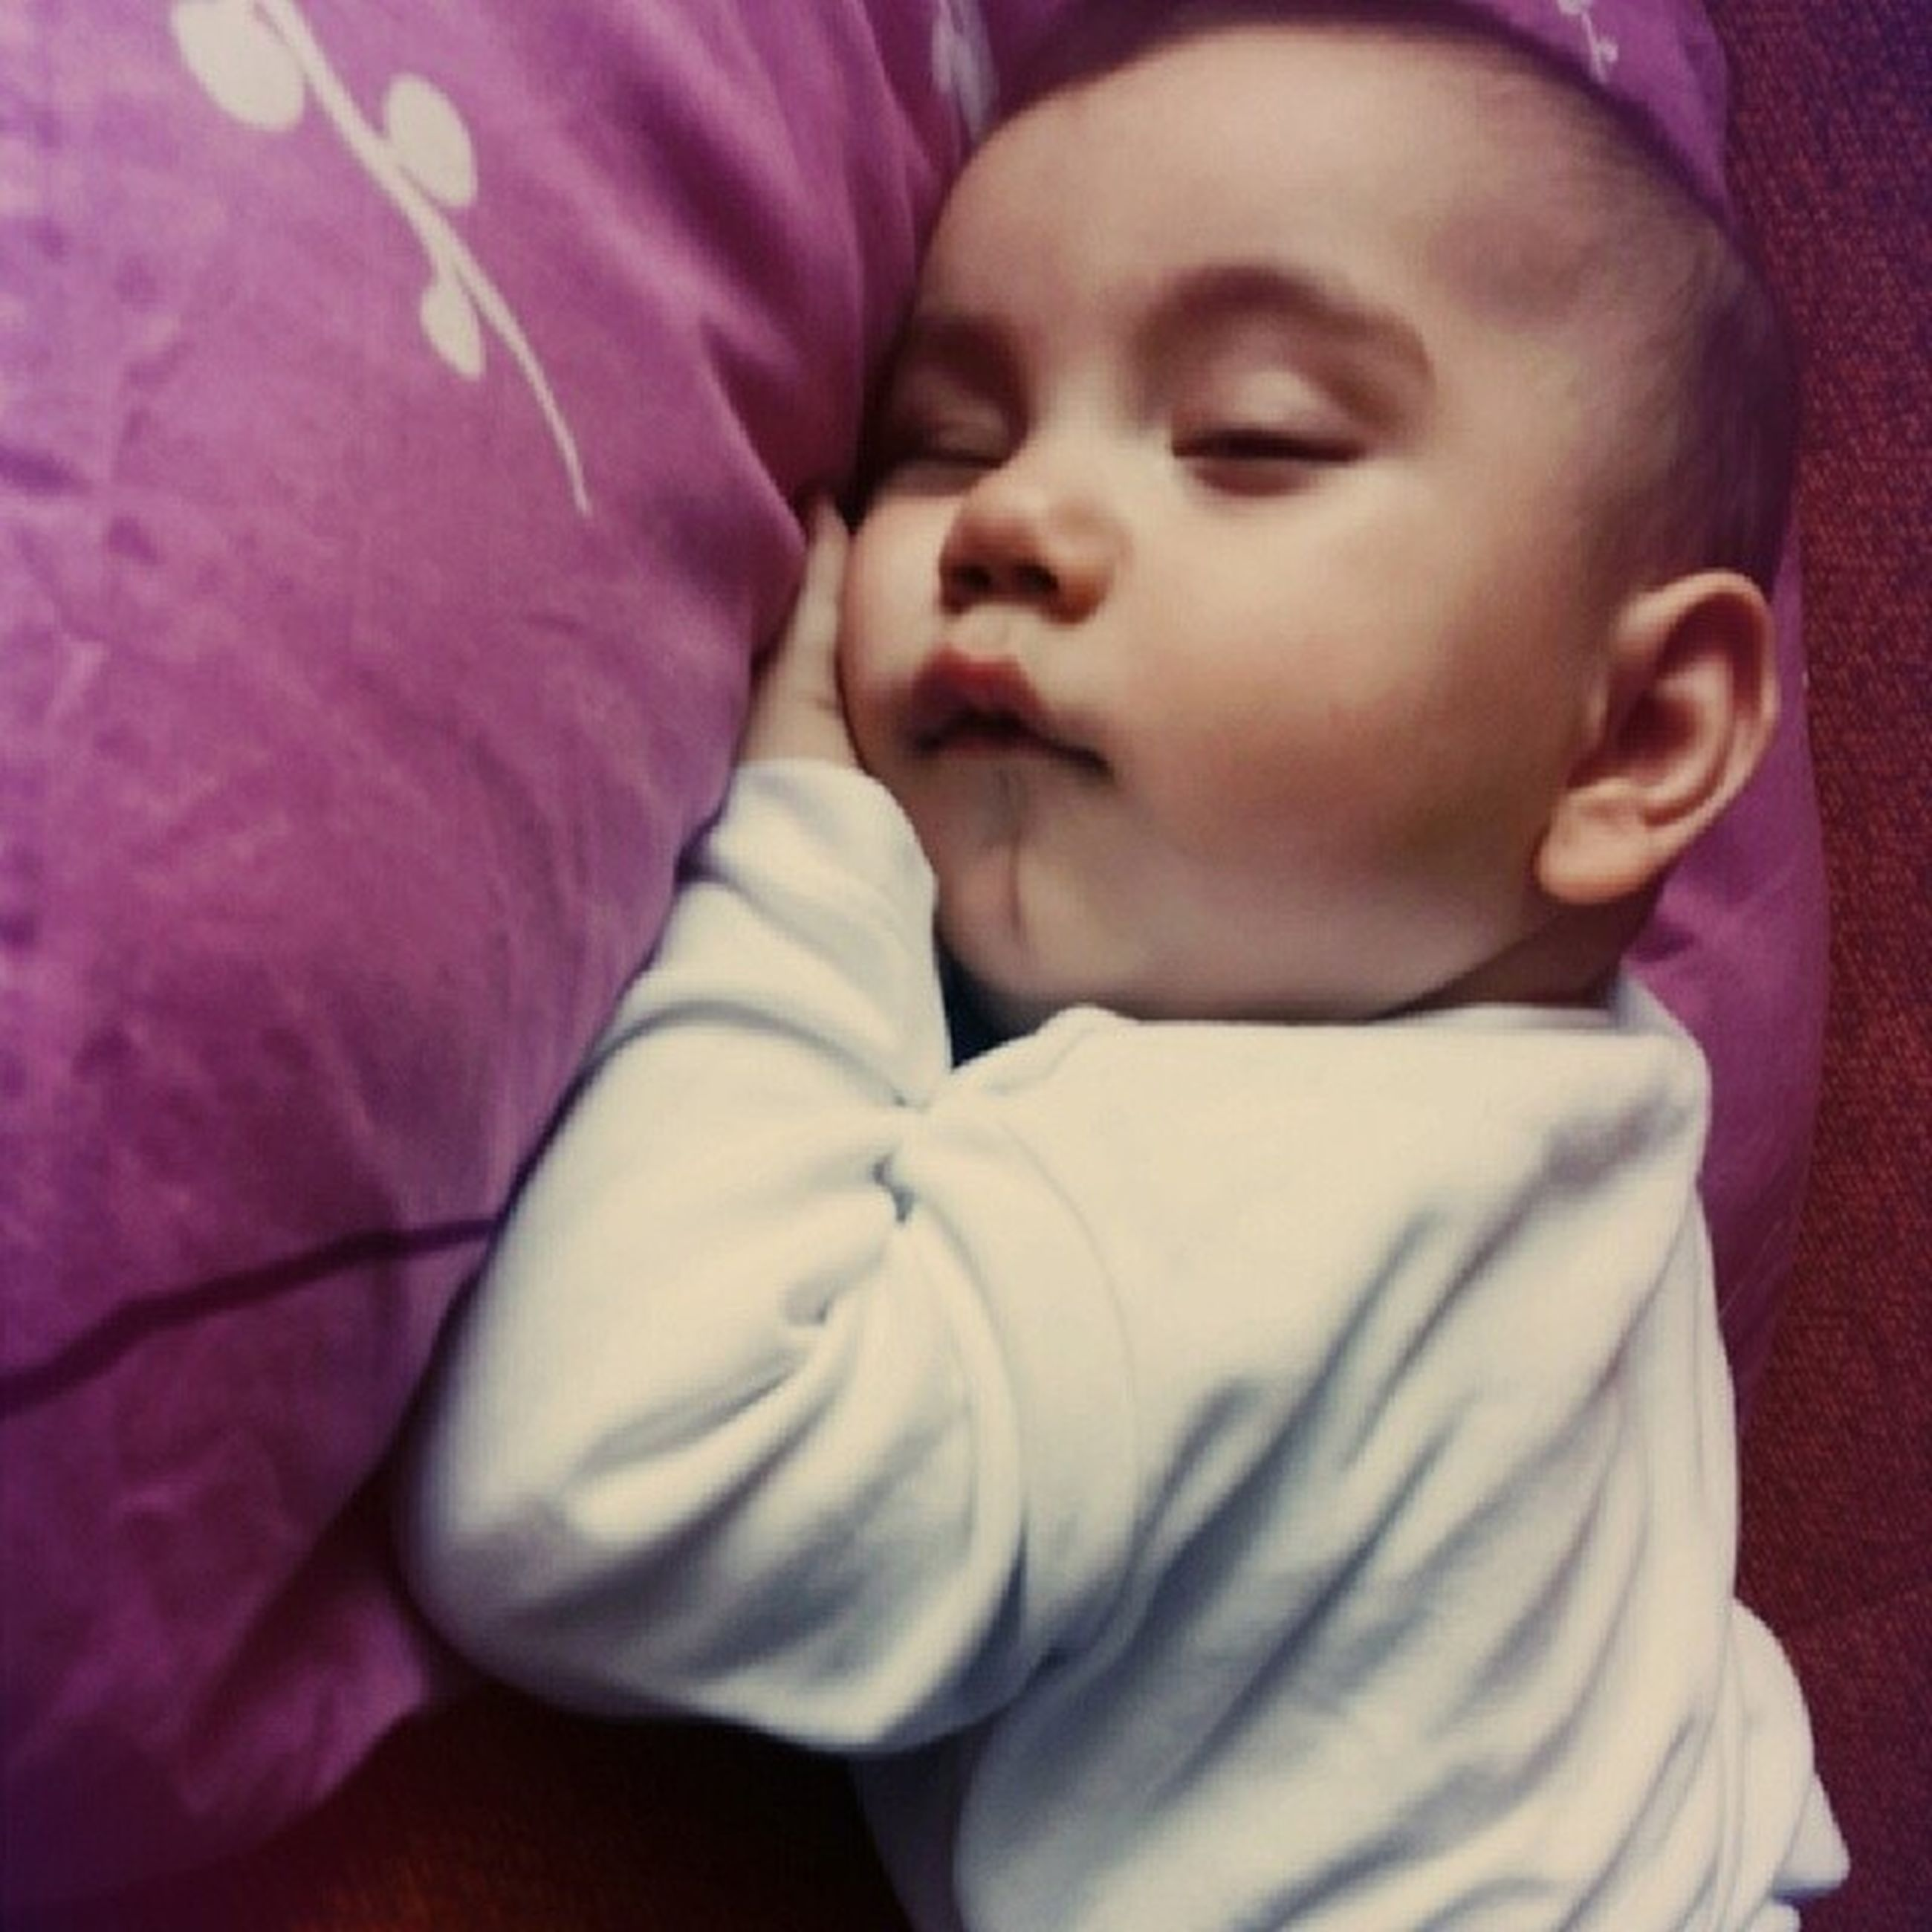 childhood, indoors, innocence, cute, person, bed, elementary age, baby, casual clothing, babyhood, relaxation, toddler, lifestyles, portrait, front view, home interior, girls, boys